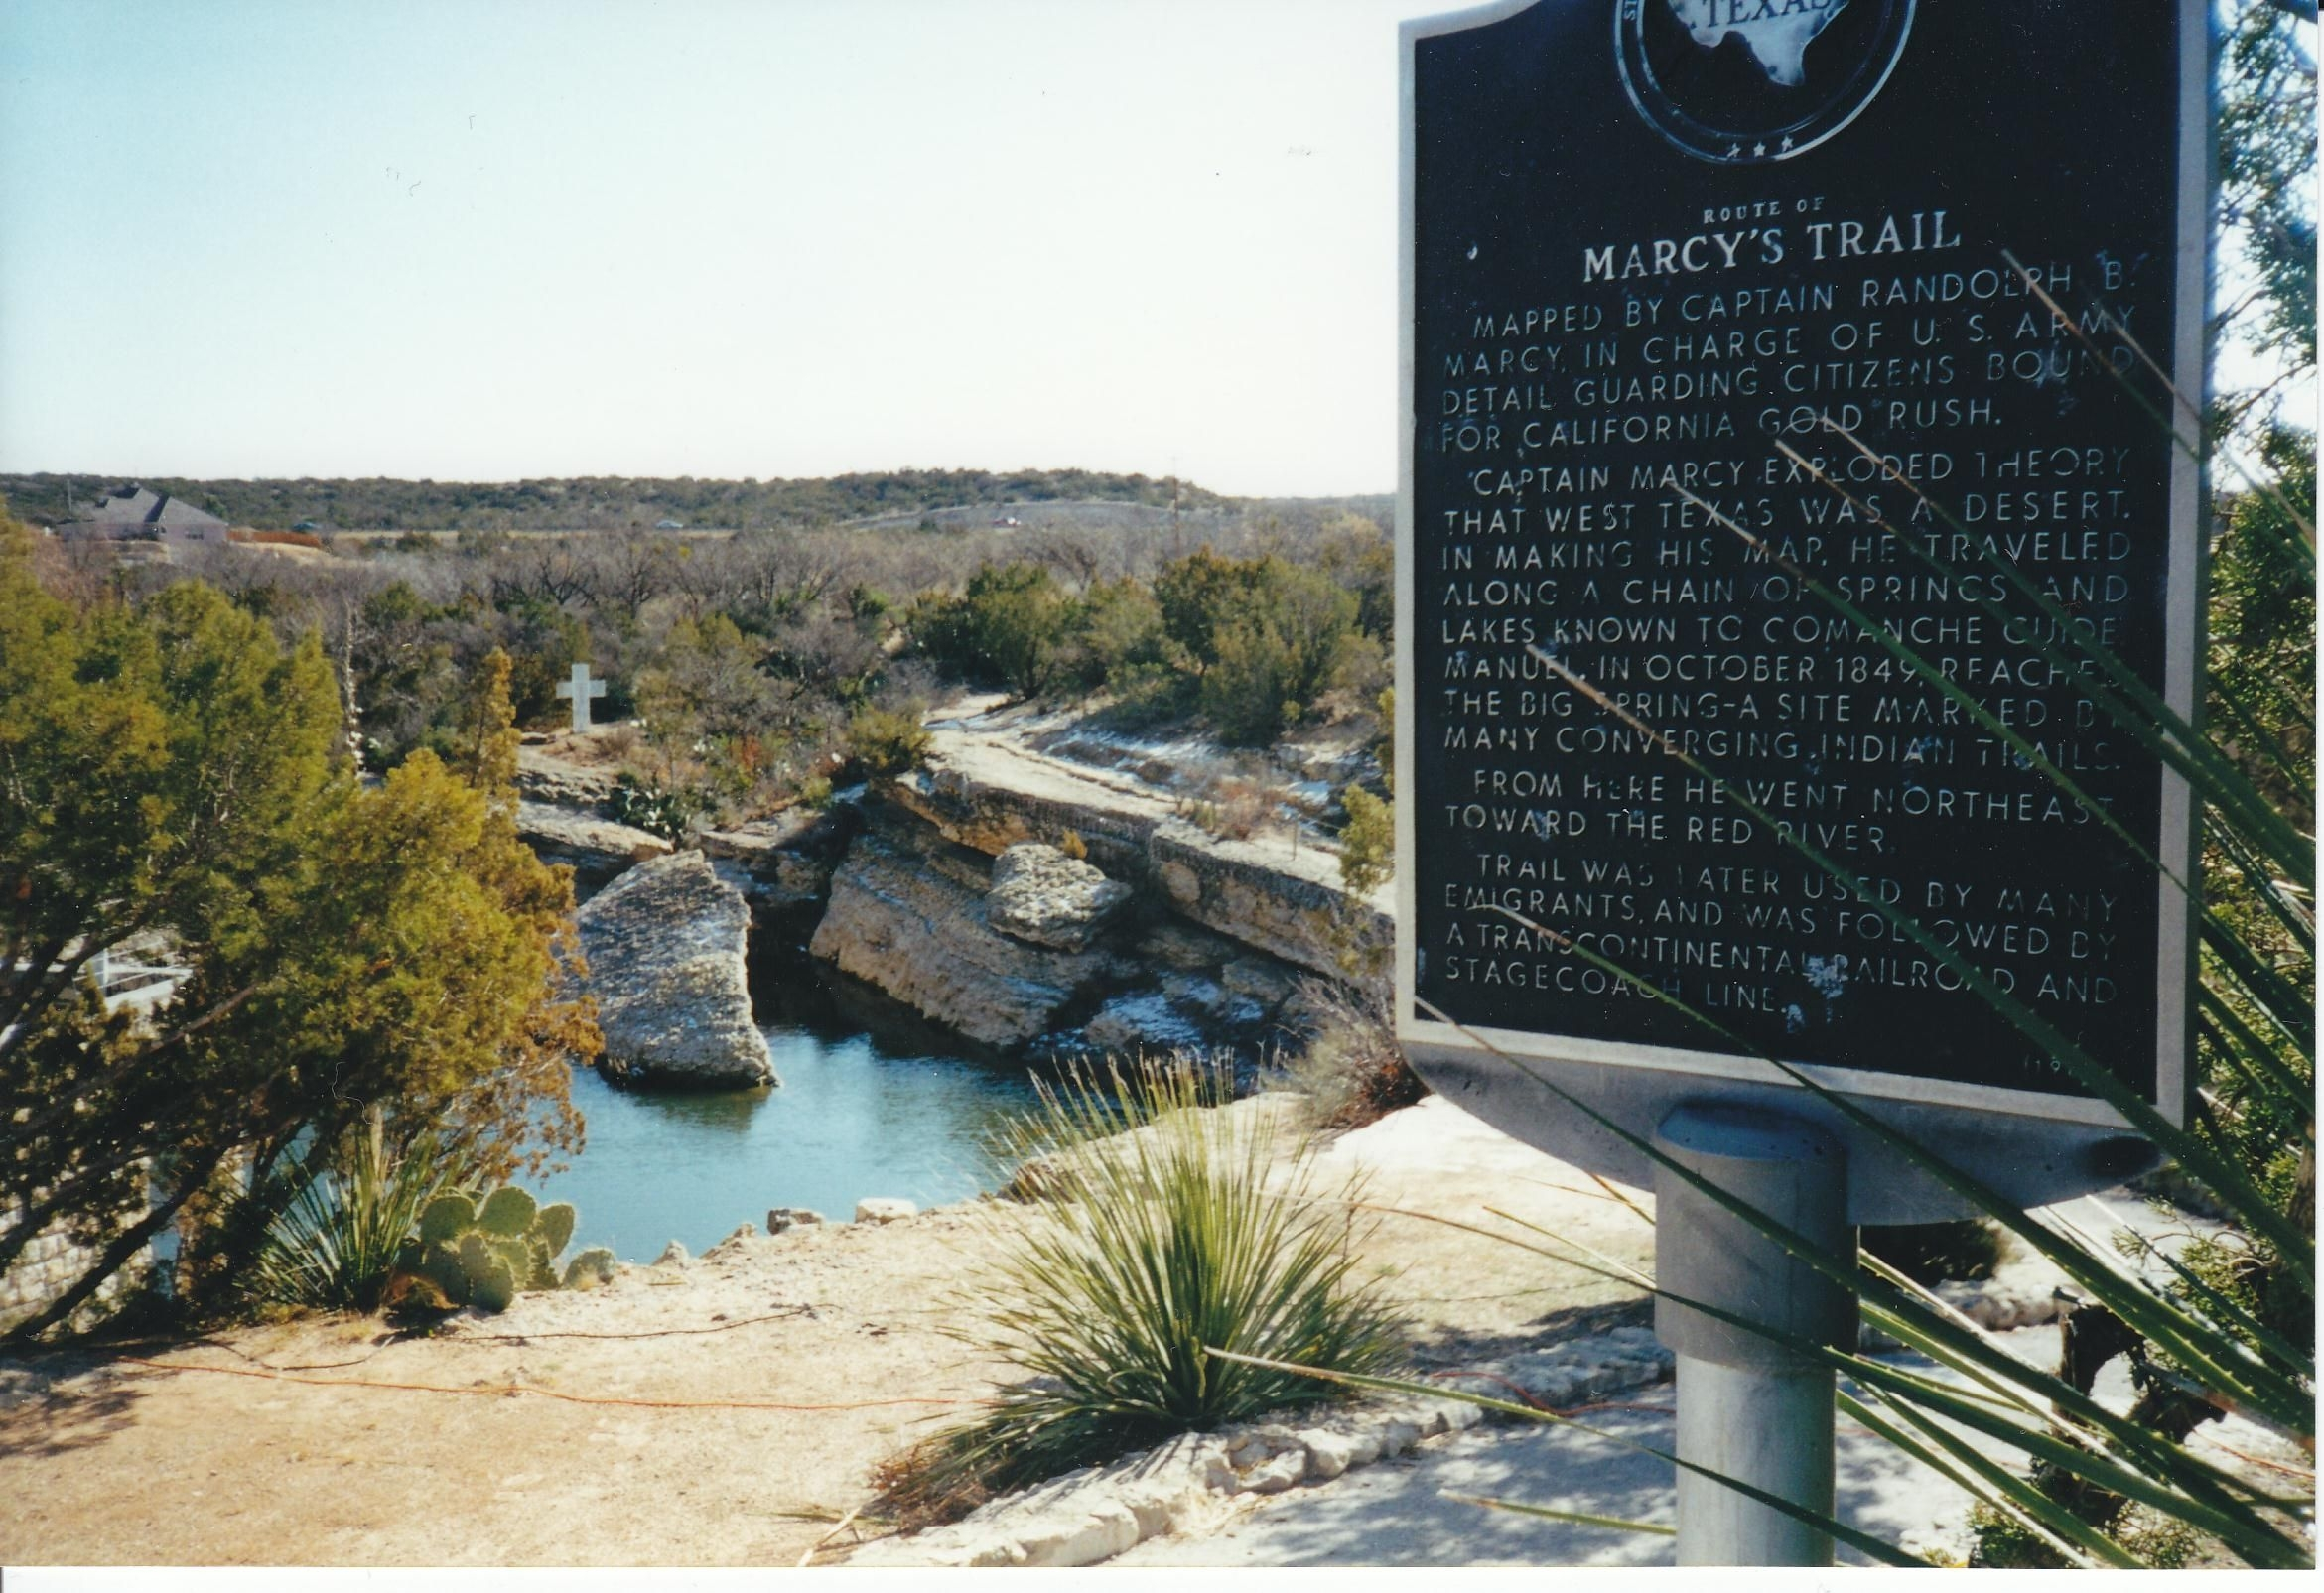 Route of Marcy's Trail Marker